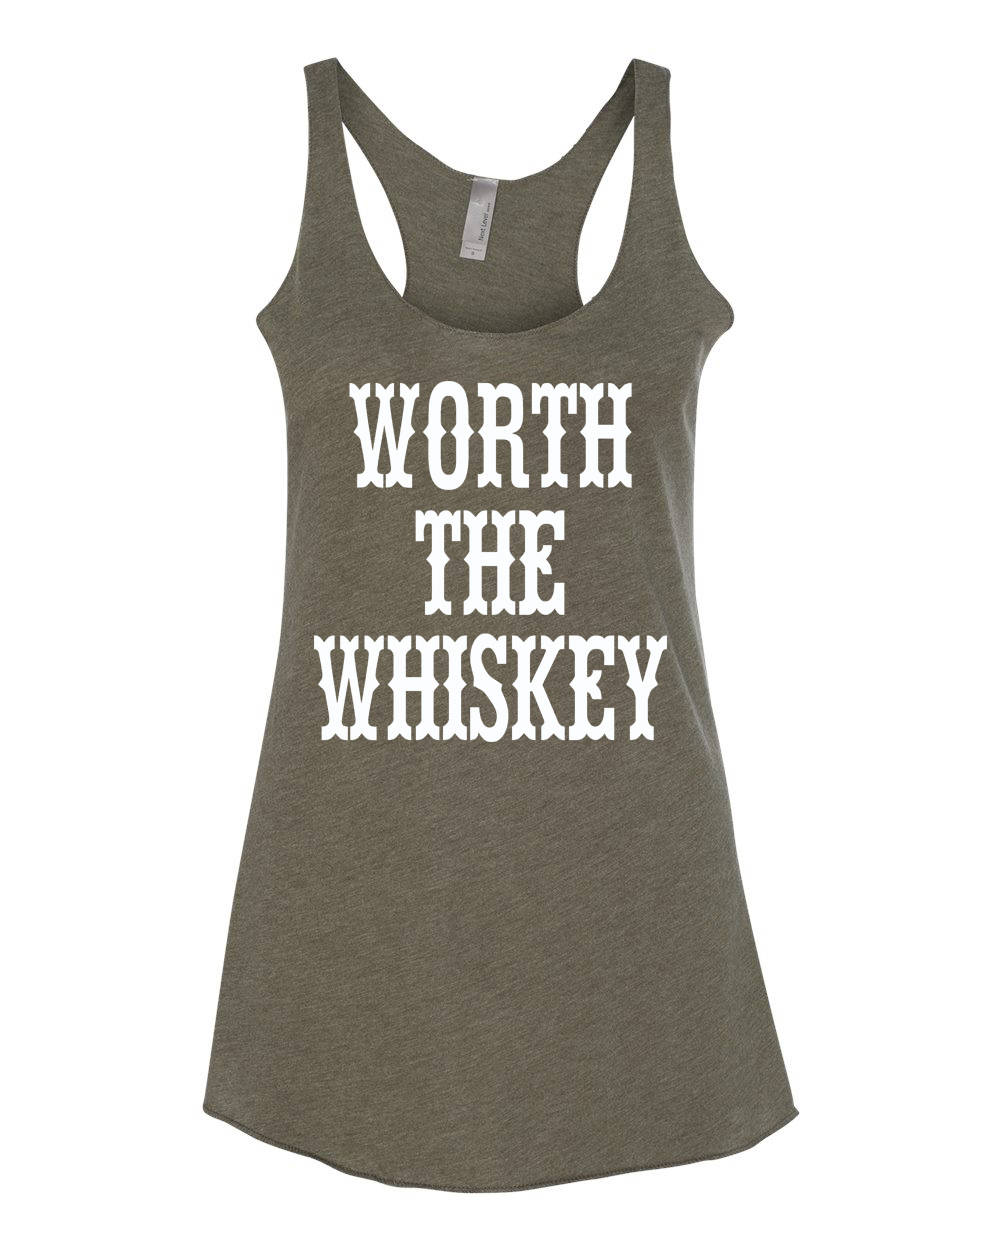 Worth The Whiskey Country Tank Womens Tank Raw Edge